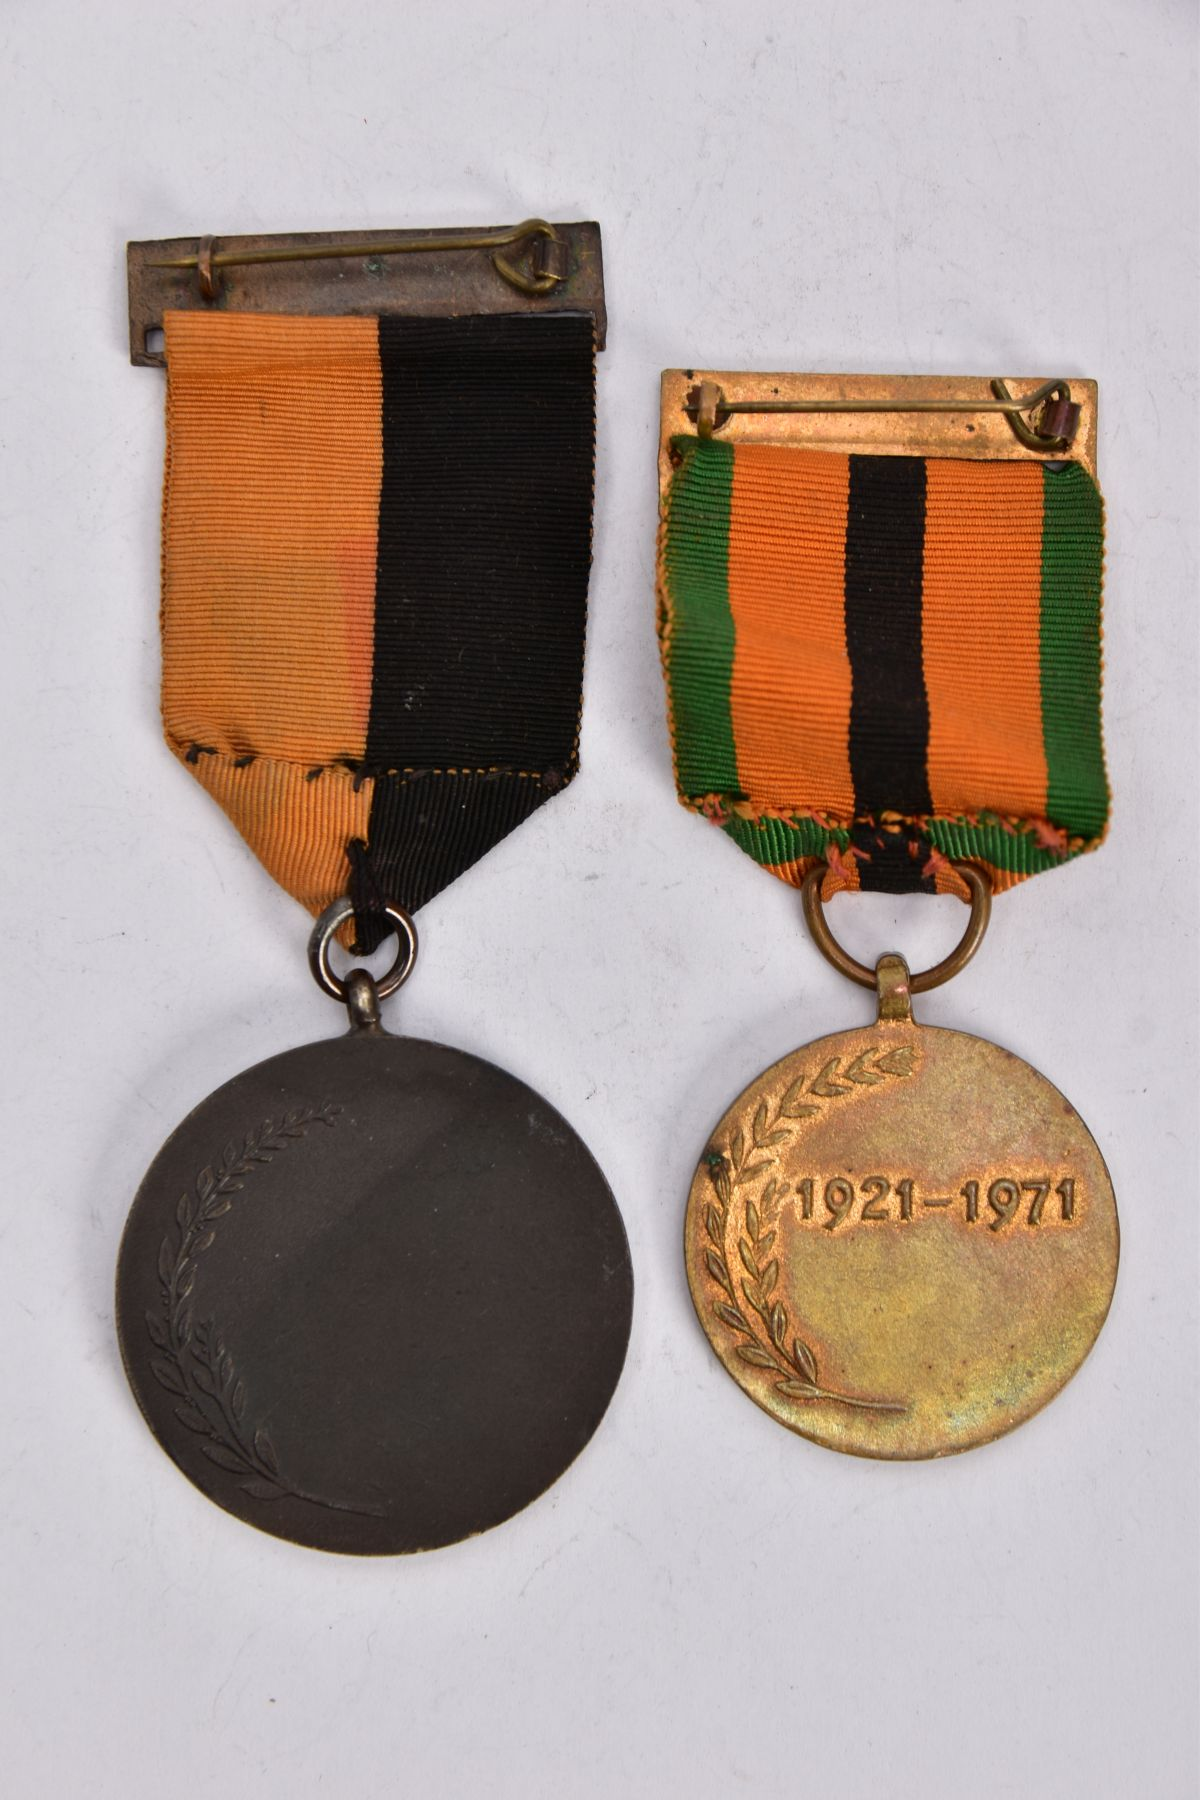 'IRISH WAR OF INDEPENDANCE MEDALS' both with wearing bar clasps, but believed to be later produced - Image 3 of 4